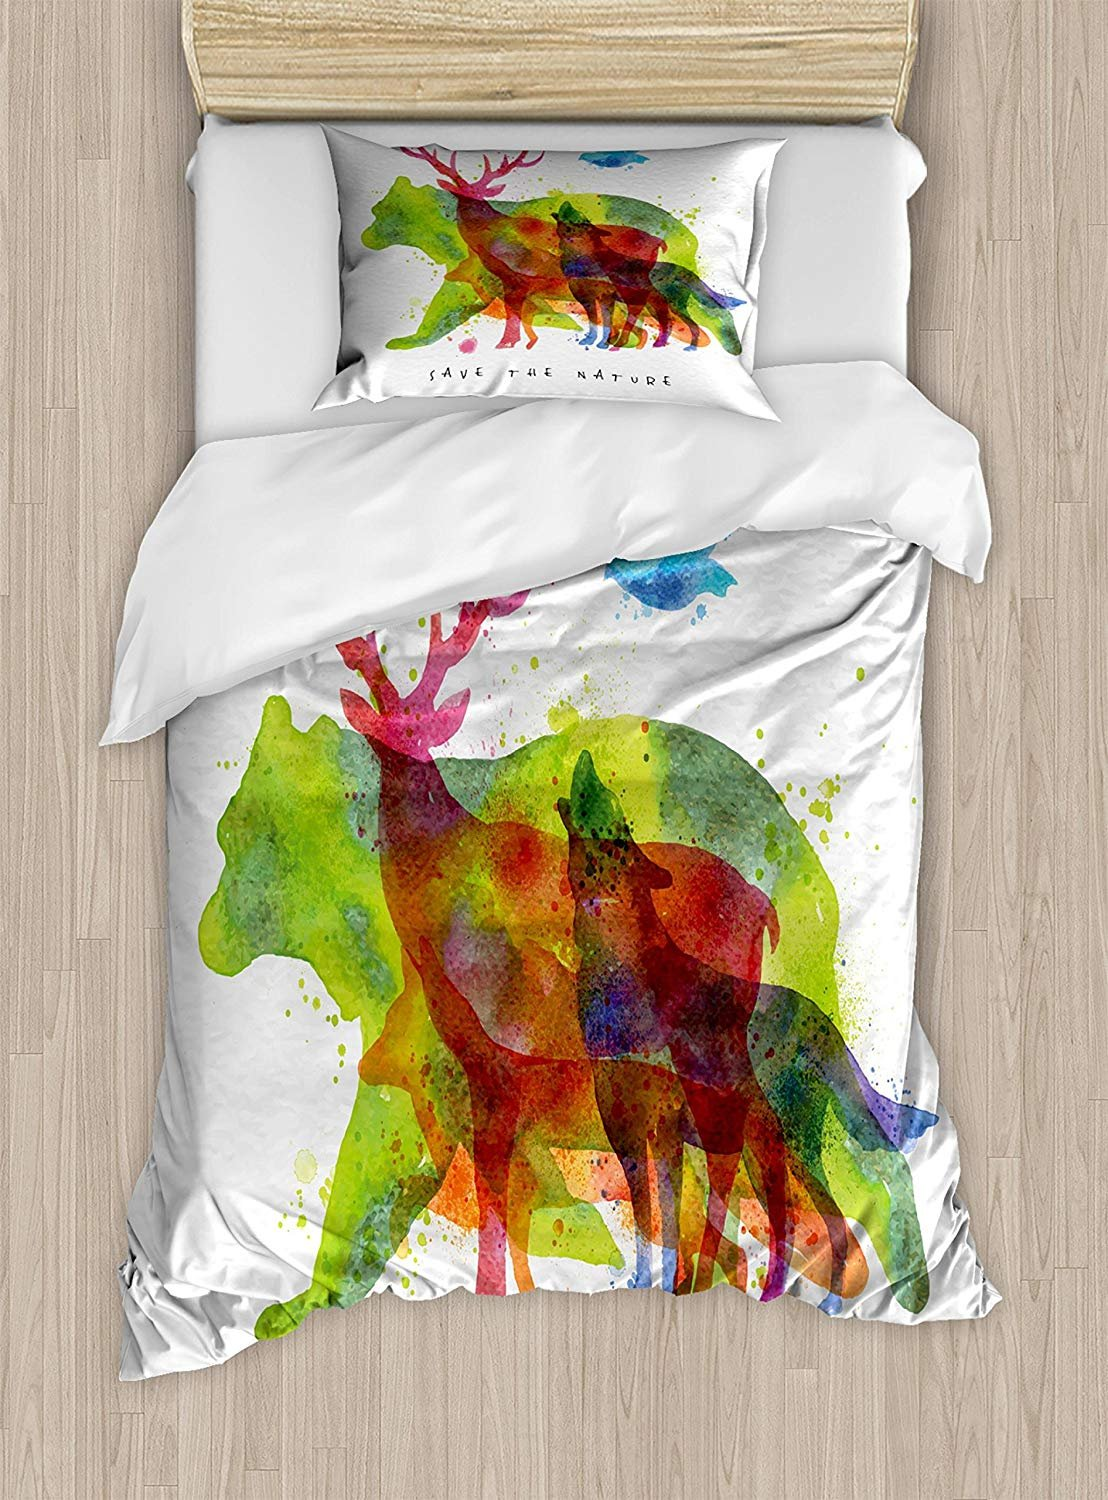 Twin XL Extra Long Bedding Set,Animal Duvet Cover Set,Alaska Wild Animals Bears Wolfs Eagles Deers in Abstract Colored Shadow like Print,Include 1 Flat Sheet 1 Duvet Cover and 2 Pillow Cases